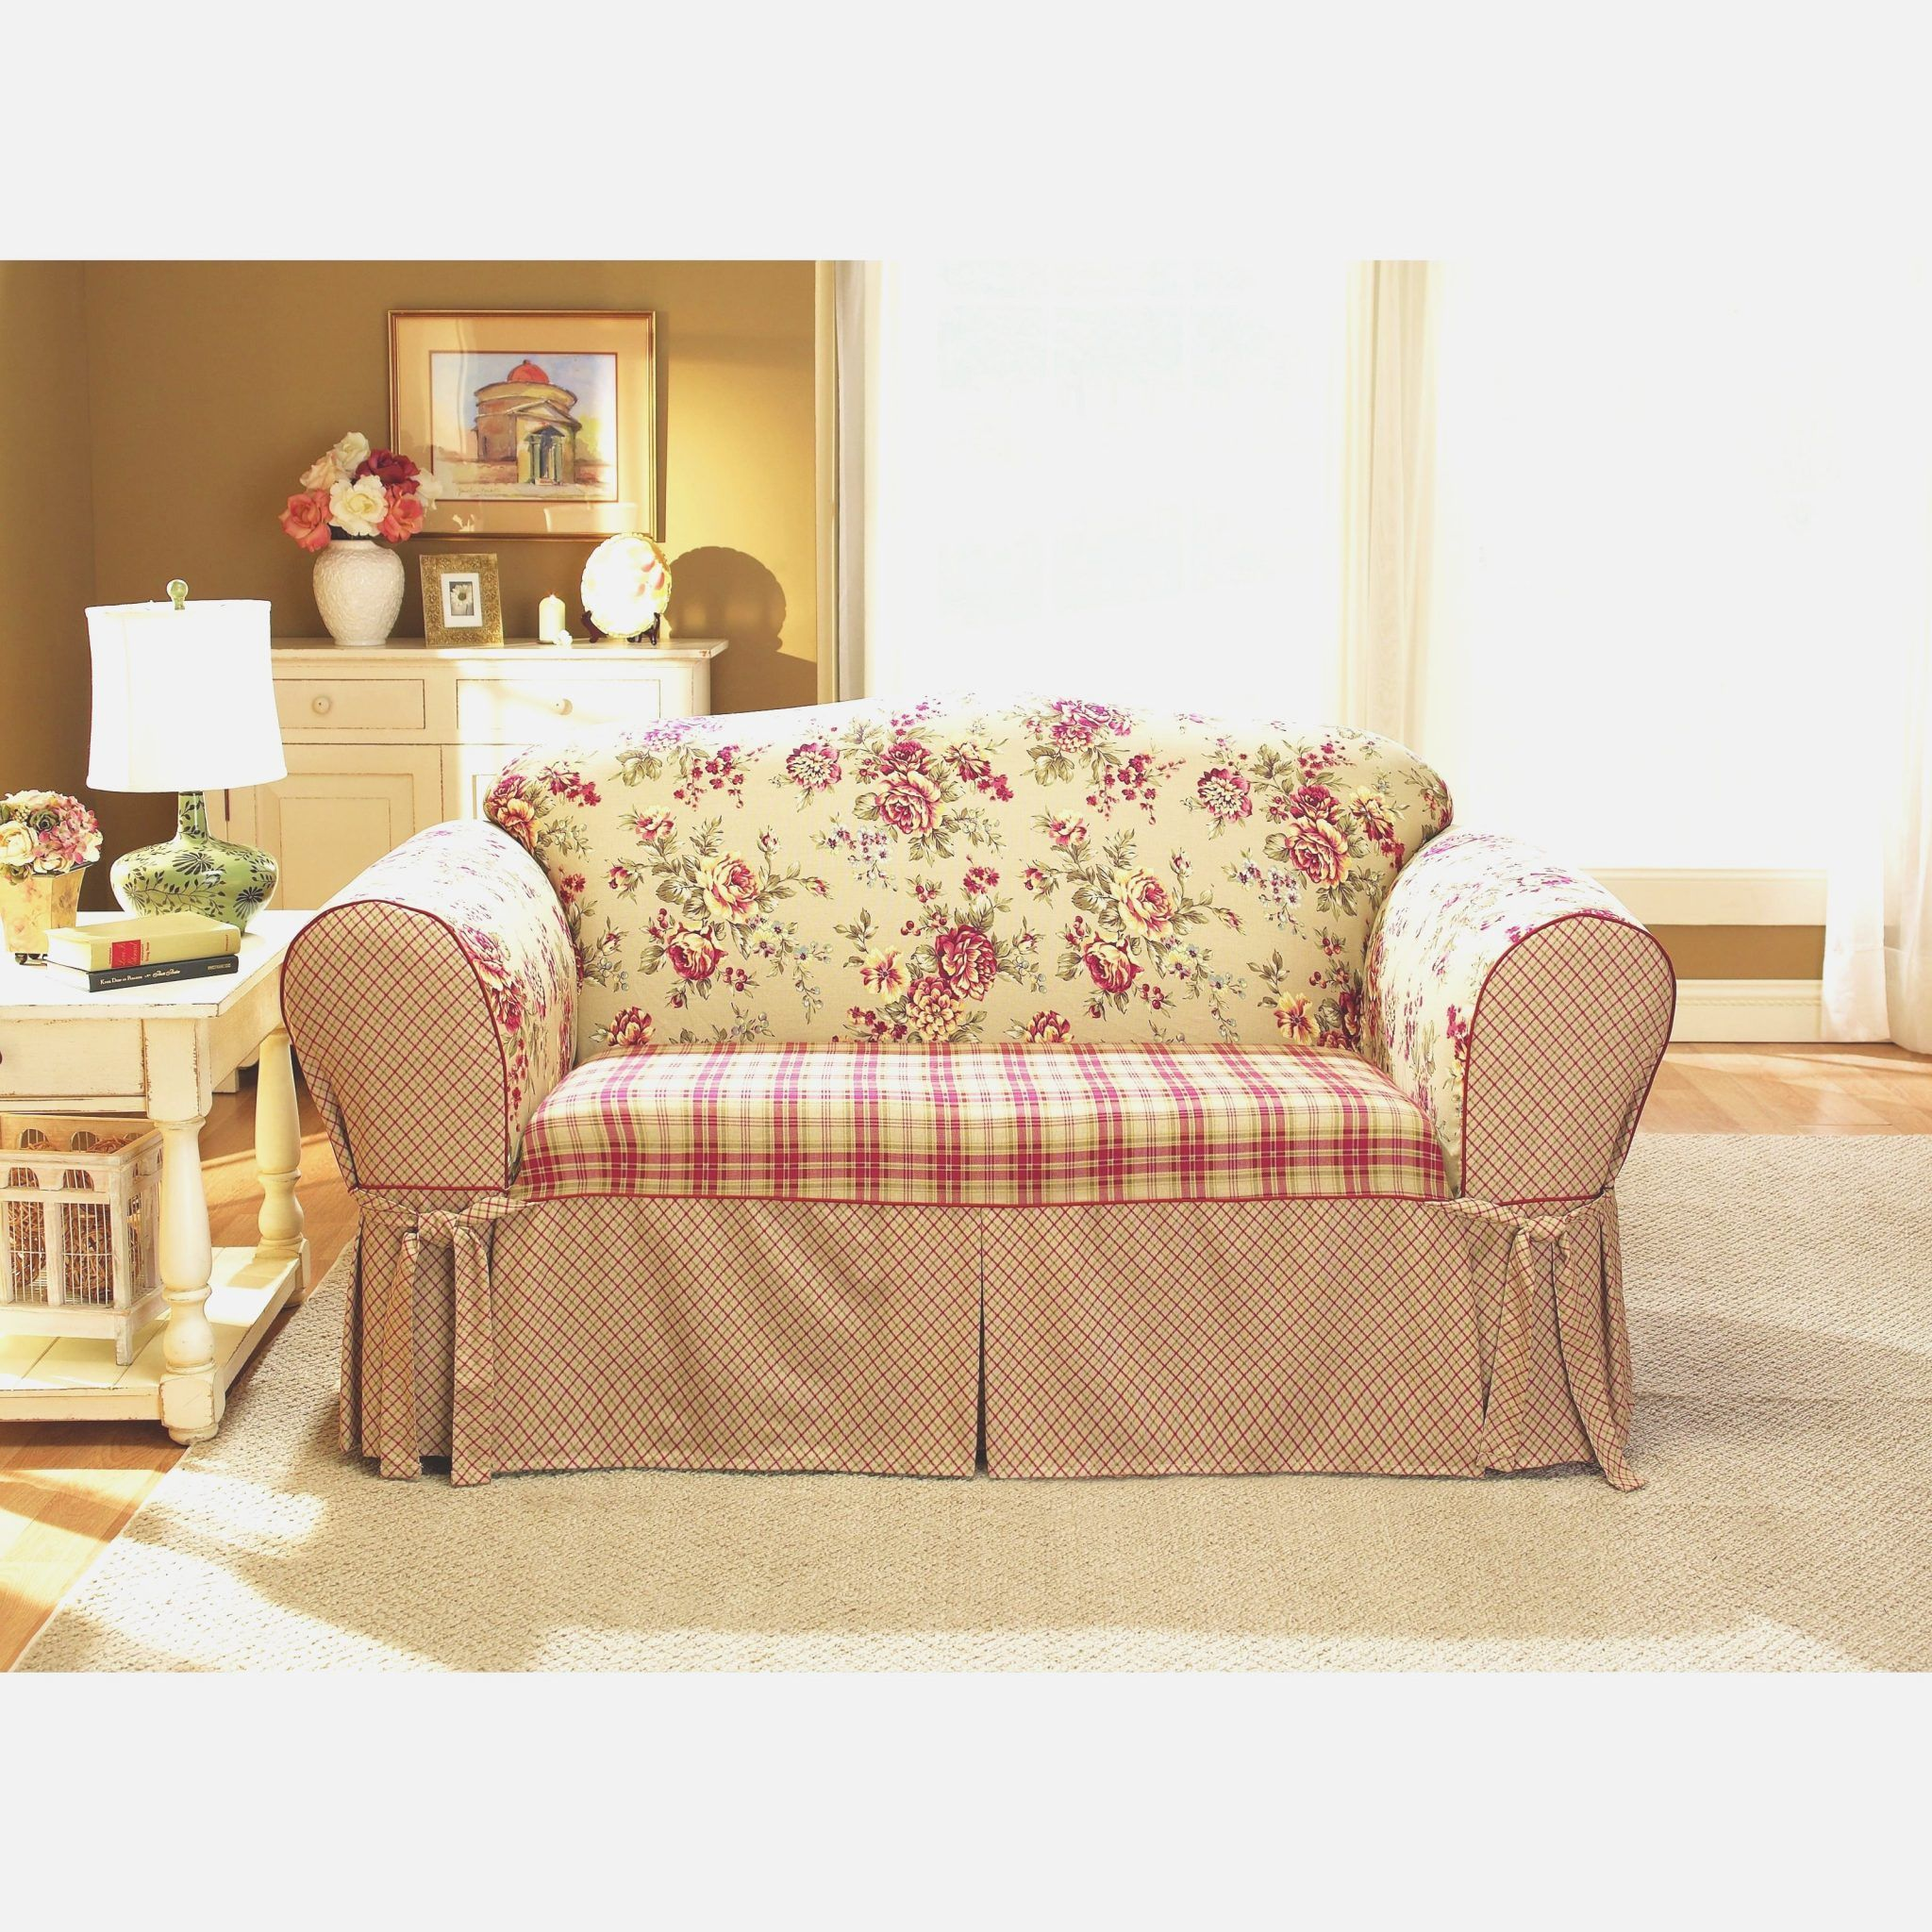 non petmaker home sofa depot slip waterproof p slipcover tan slipcovers the